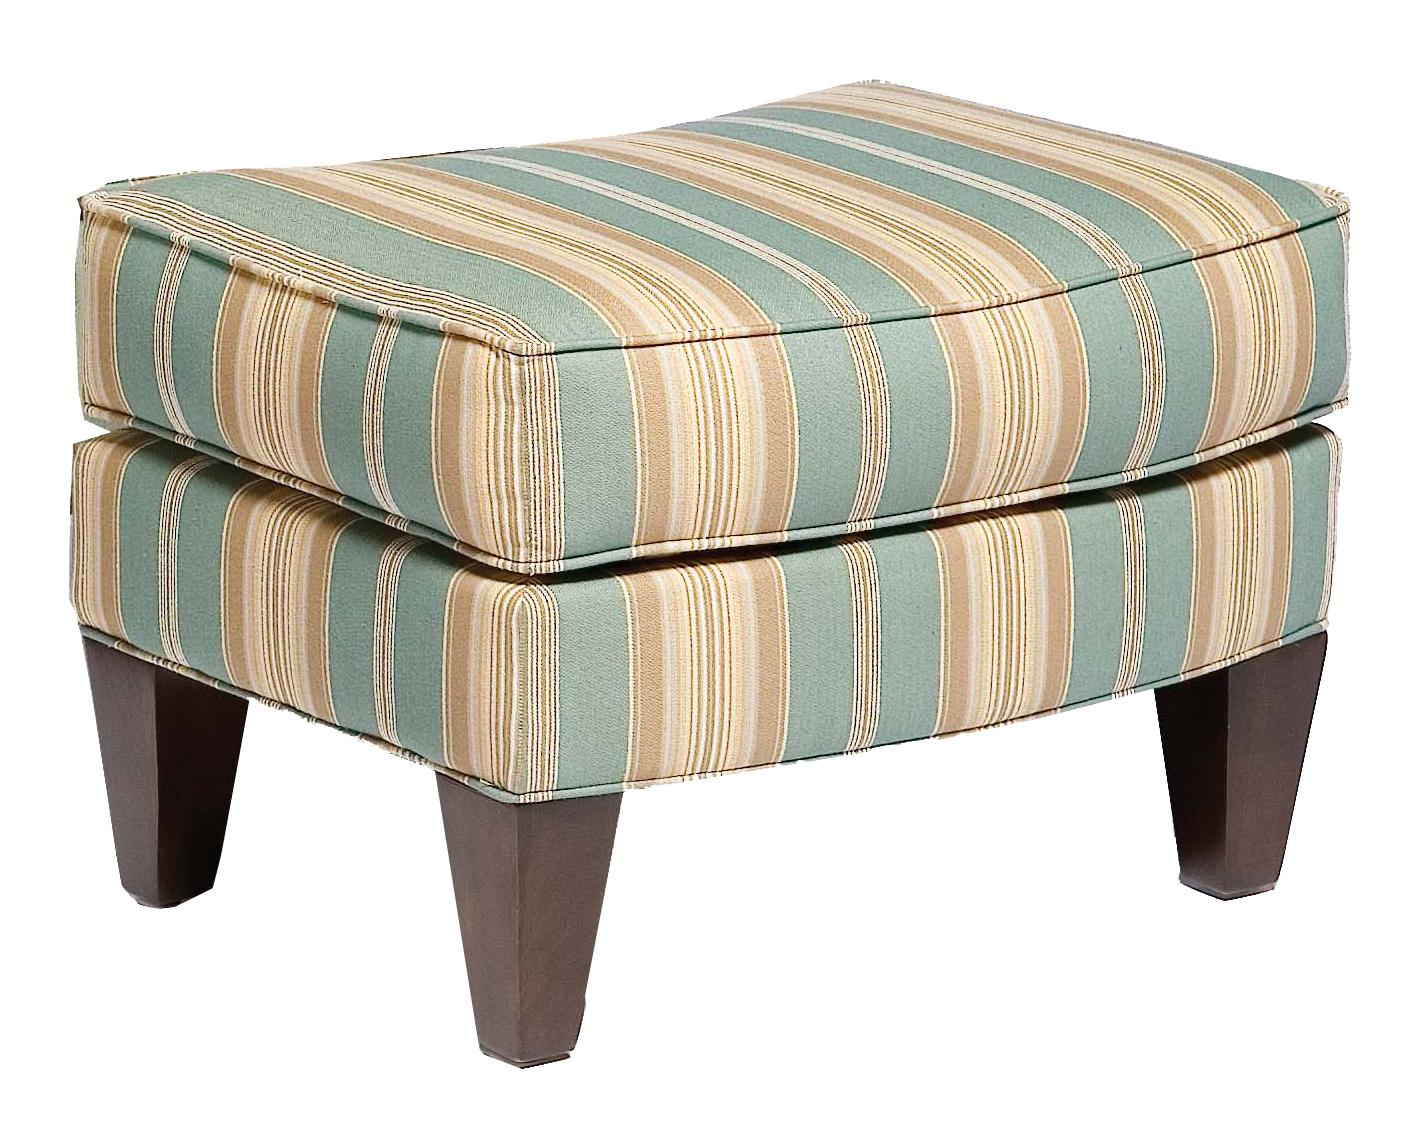 5706 Ottoman by Fairfield at Lindy's Furniture Company